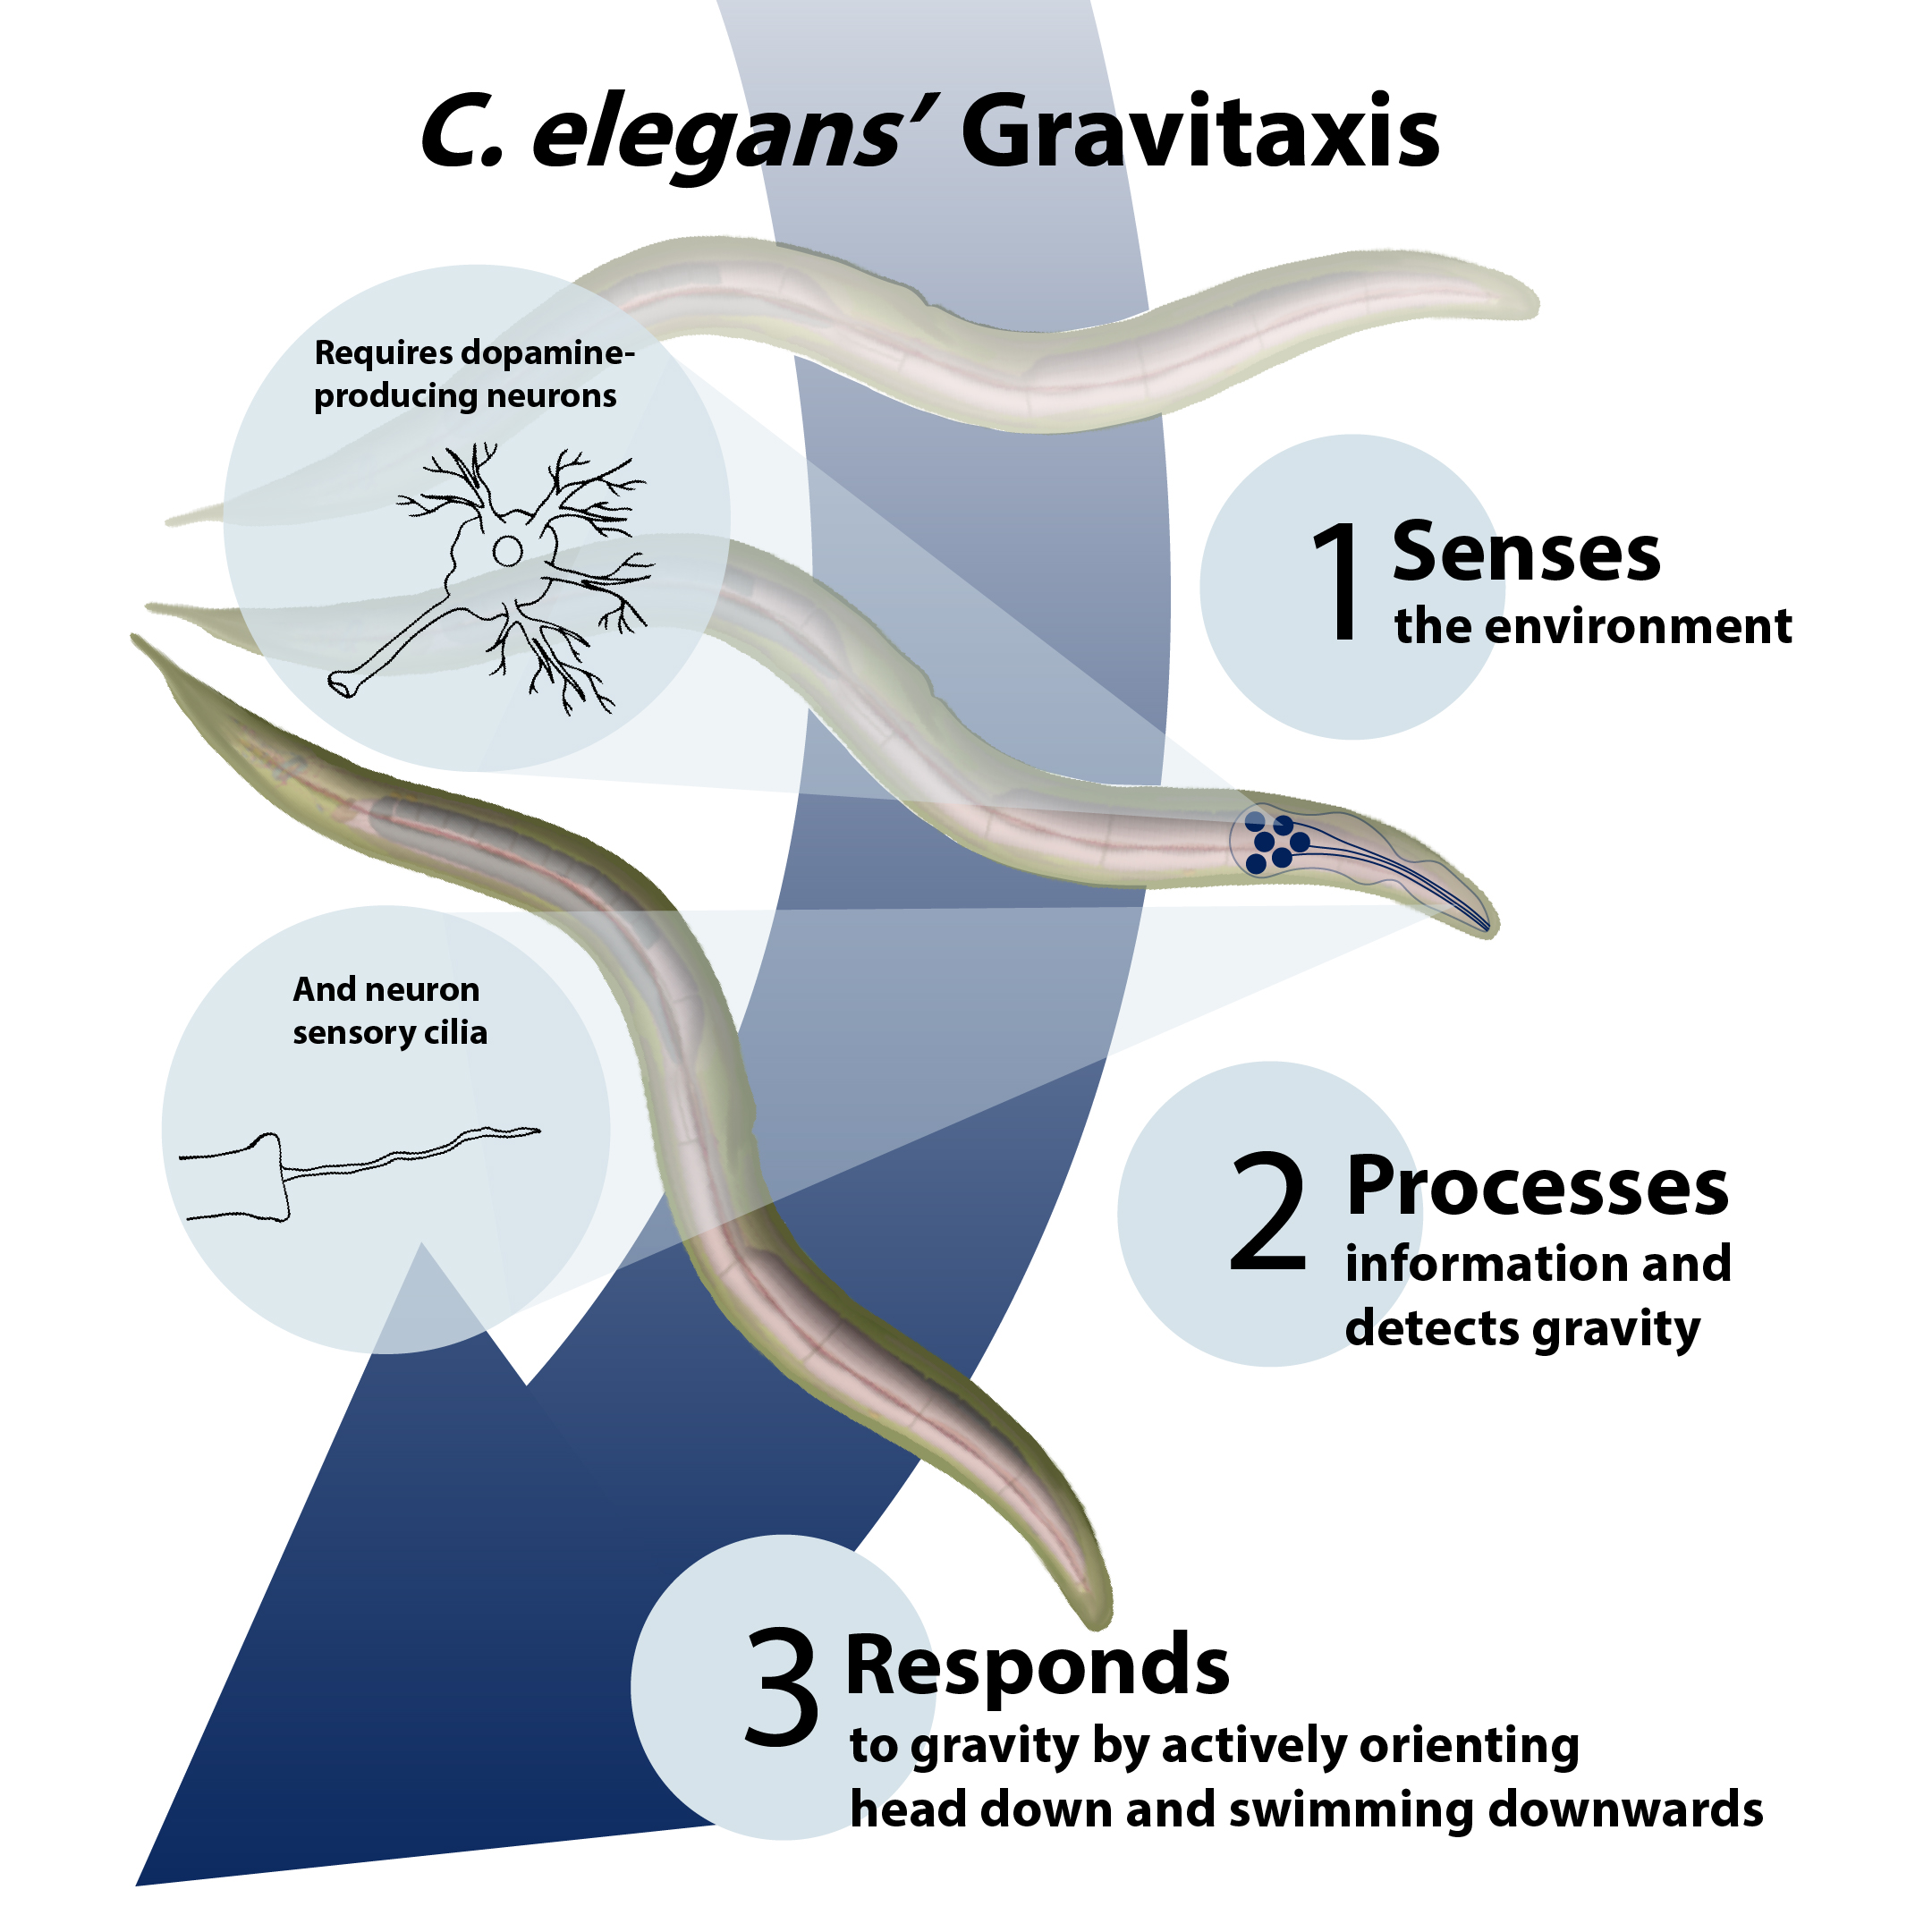 Infographic depicting how c.elegans senses, processes and responds to gravity.